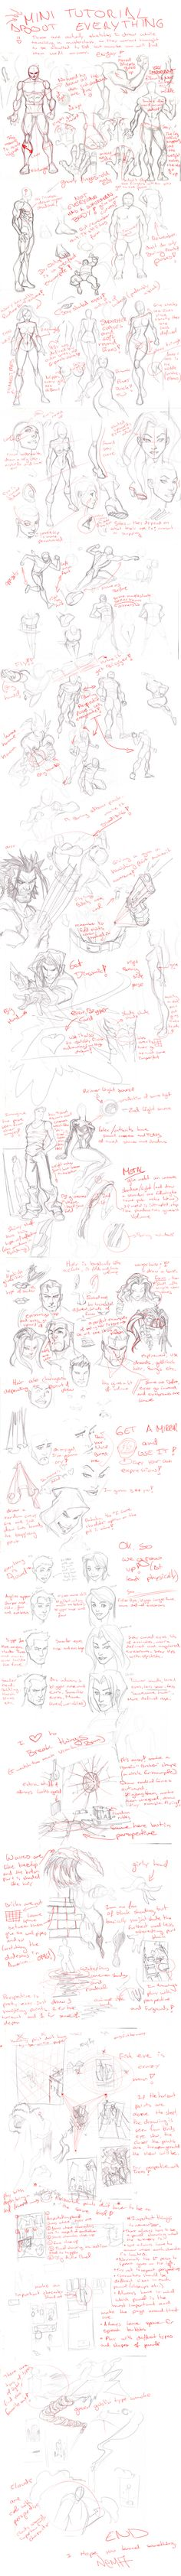 Everything Mini Tutorial by *CarlosGomezArtist on deviantART repinned by www.BlickeDeeler.de